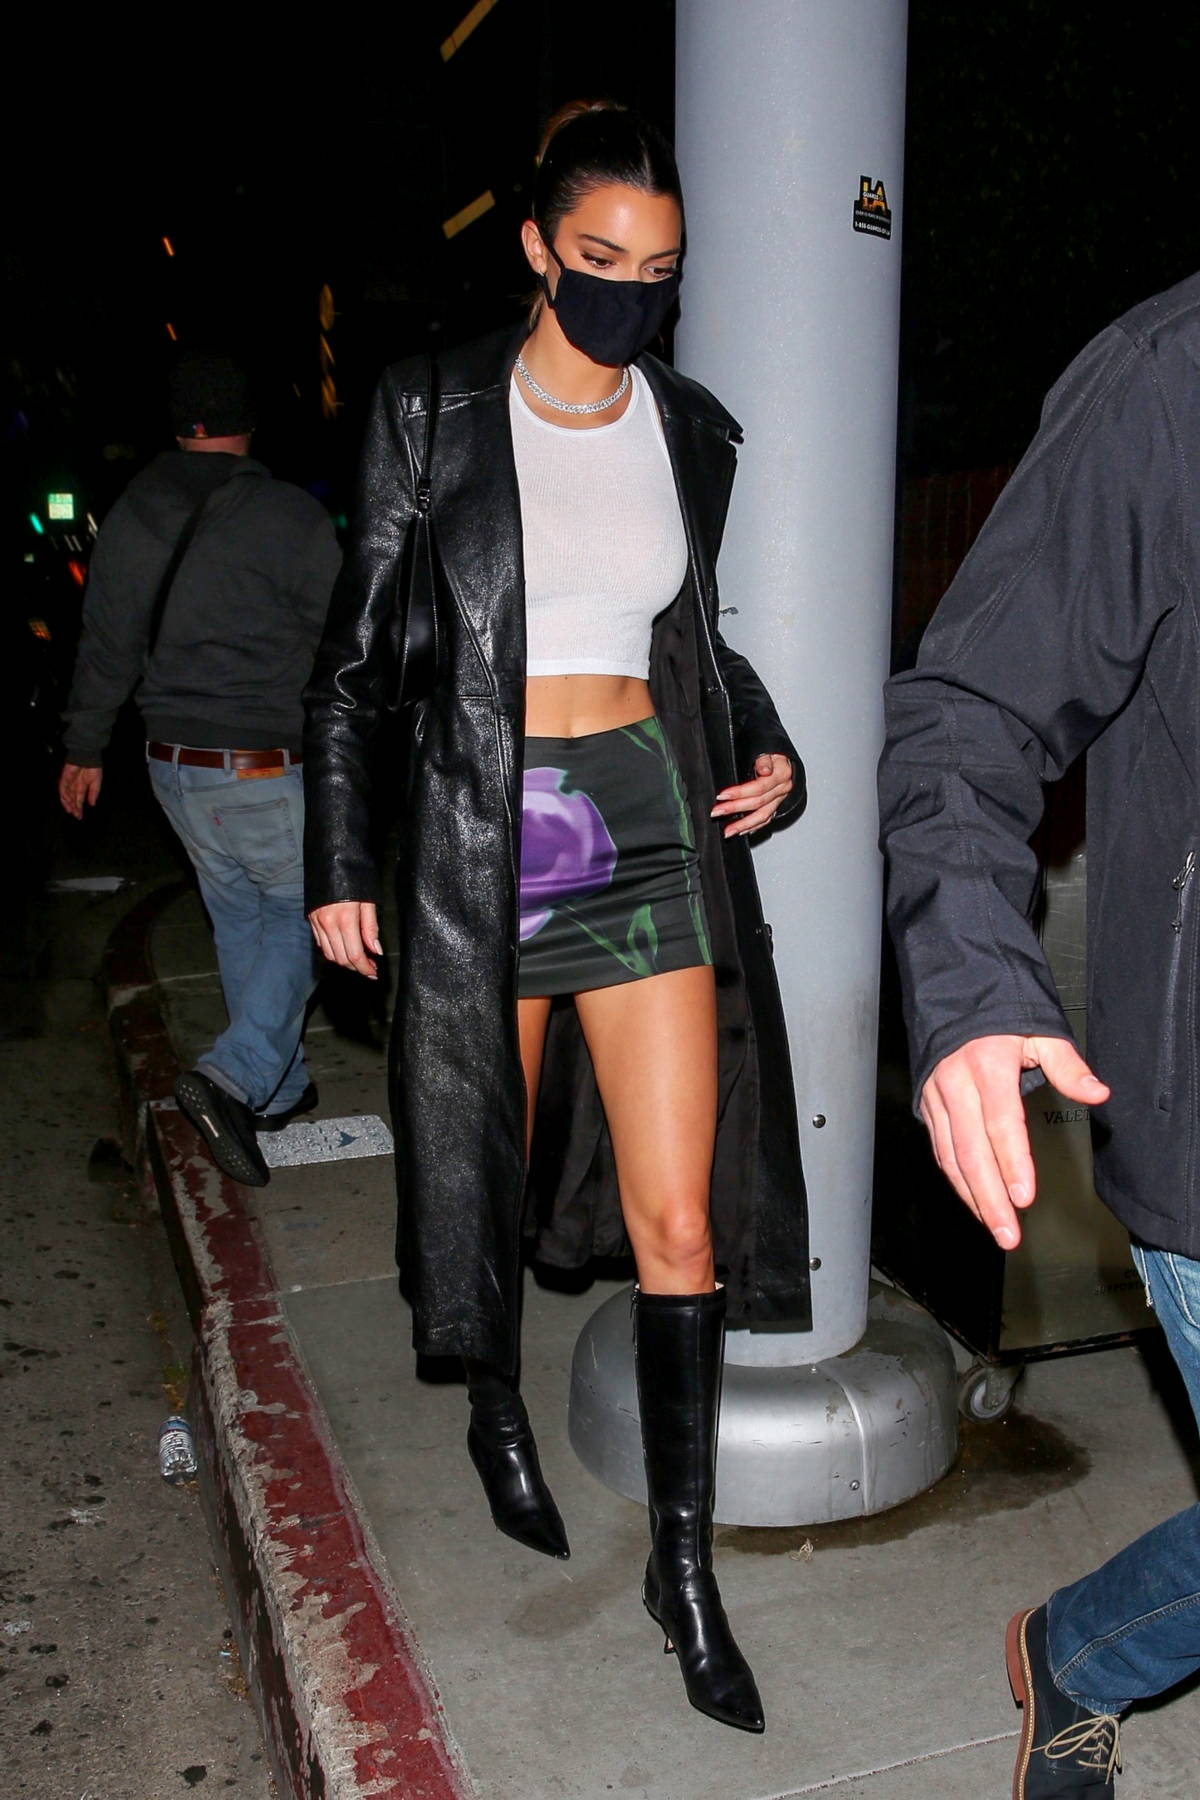 Kendall Jenner looks stunning as she arrives at Justin Bieber's album release party in West Hollywood, California